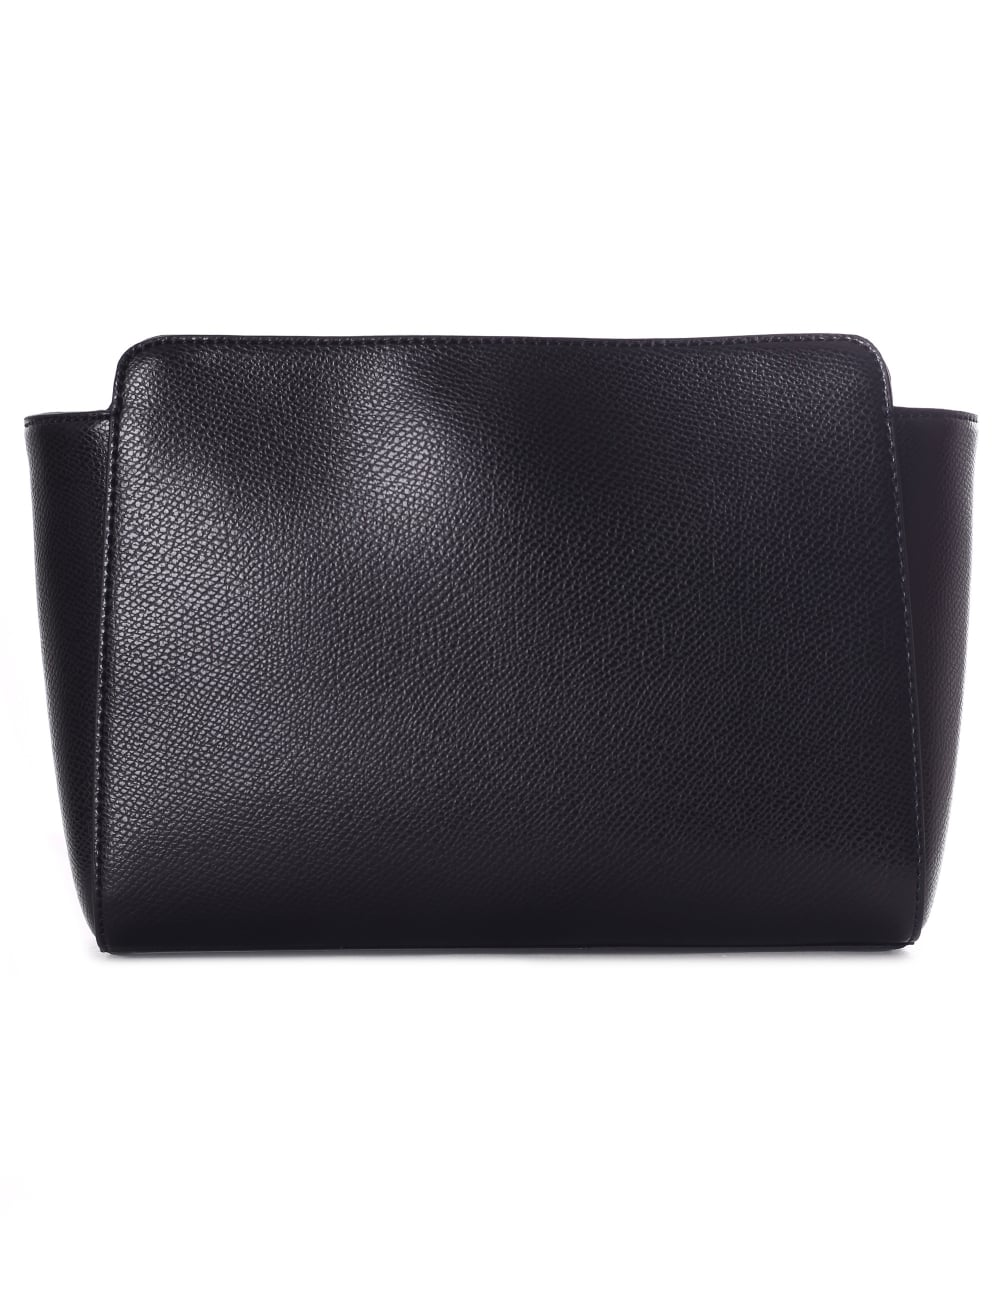 f21f6ccfa2cfe Emporio Armani Women s Medium Grain Crossbody Bag Black